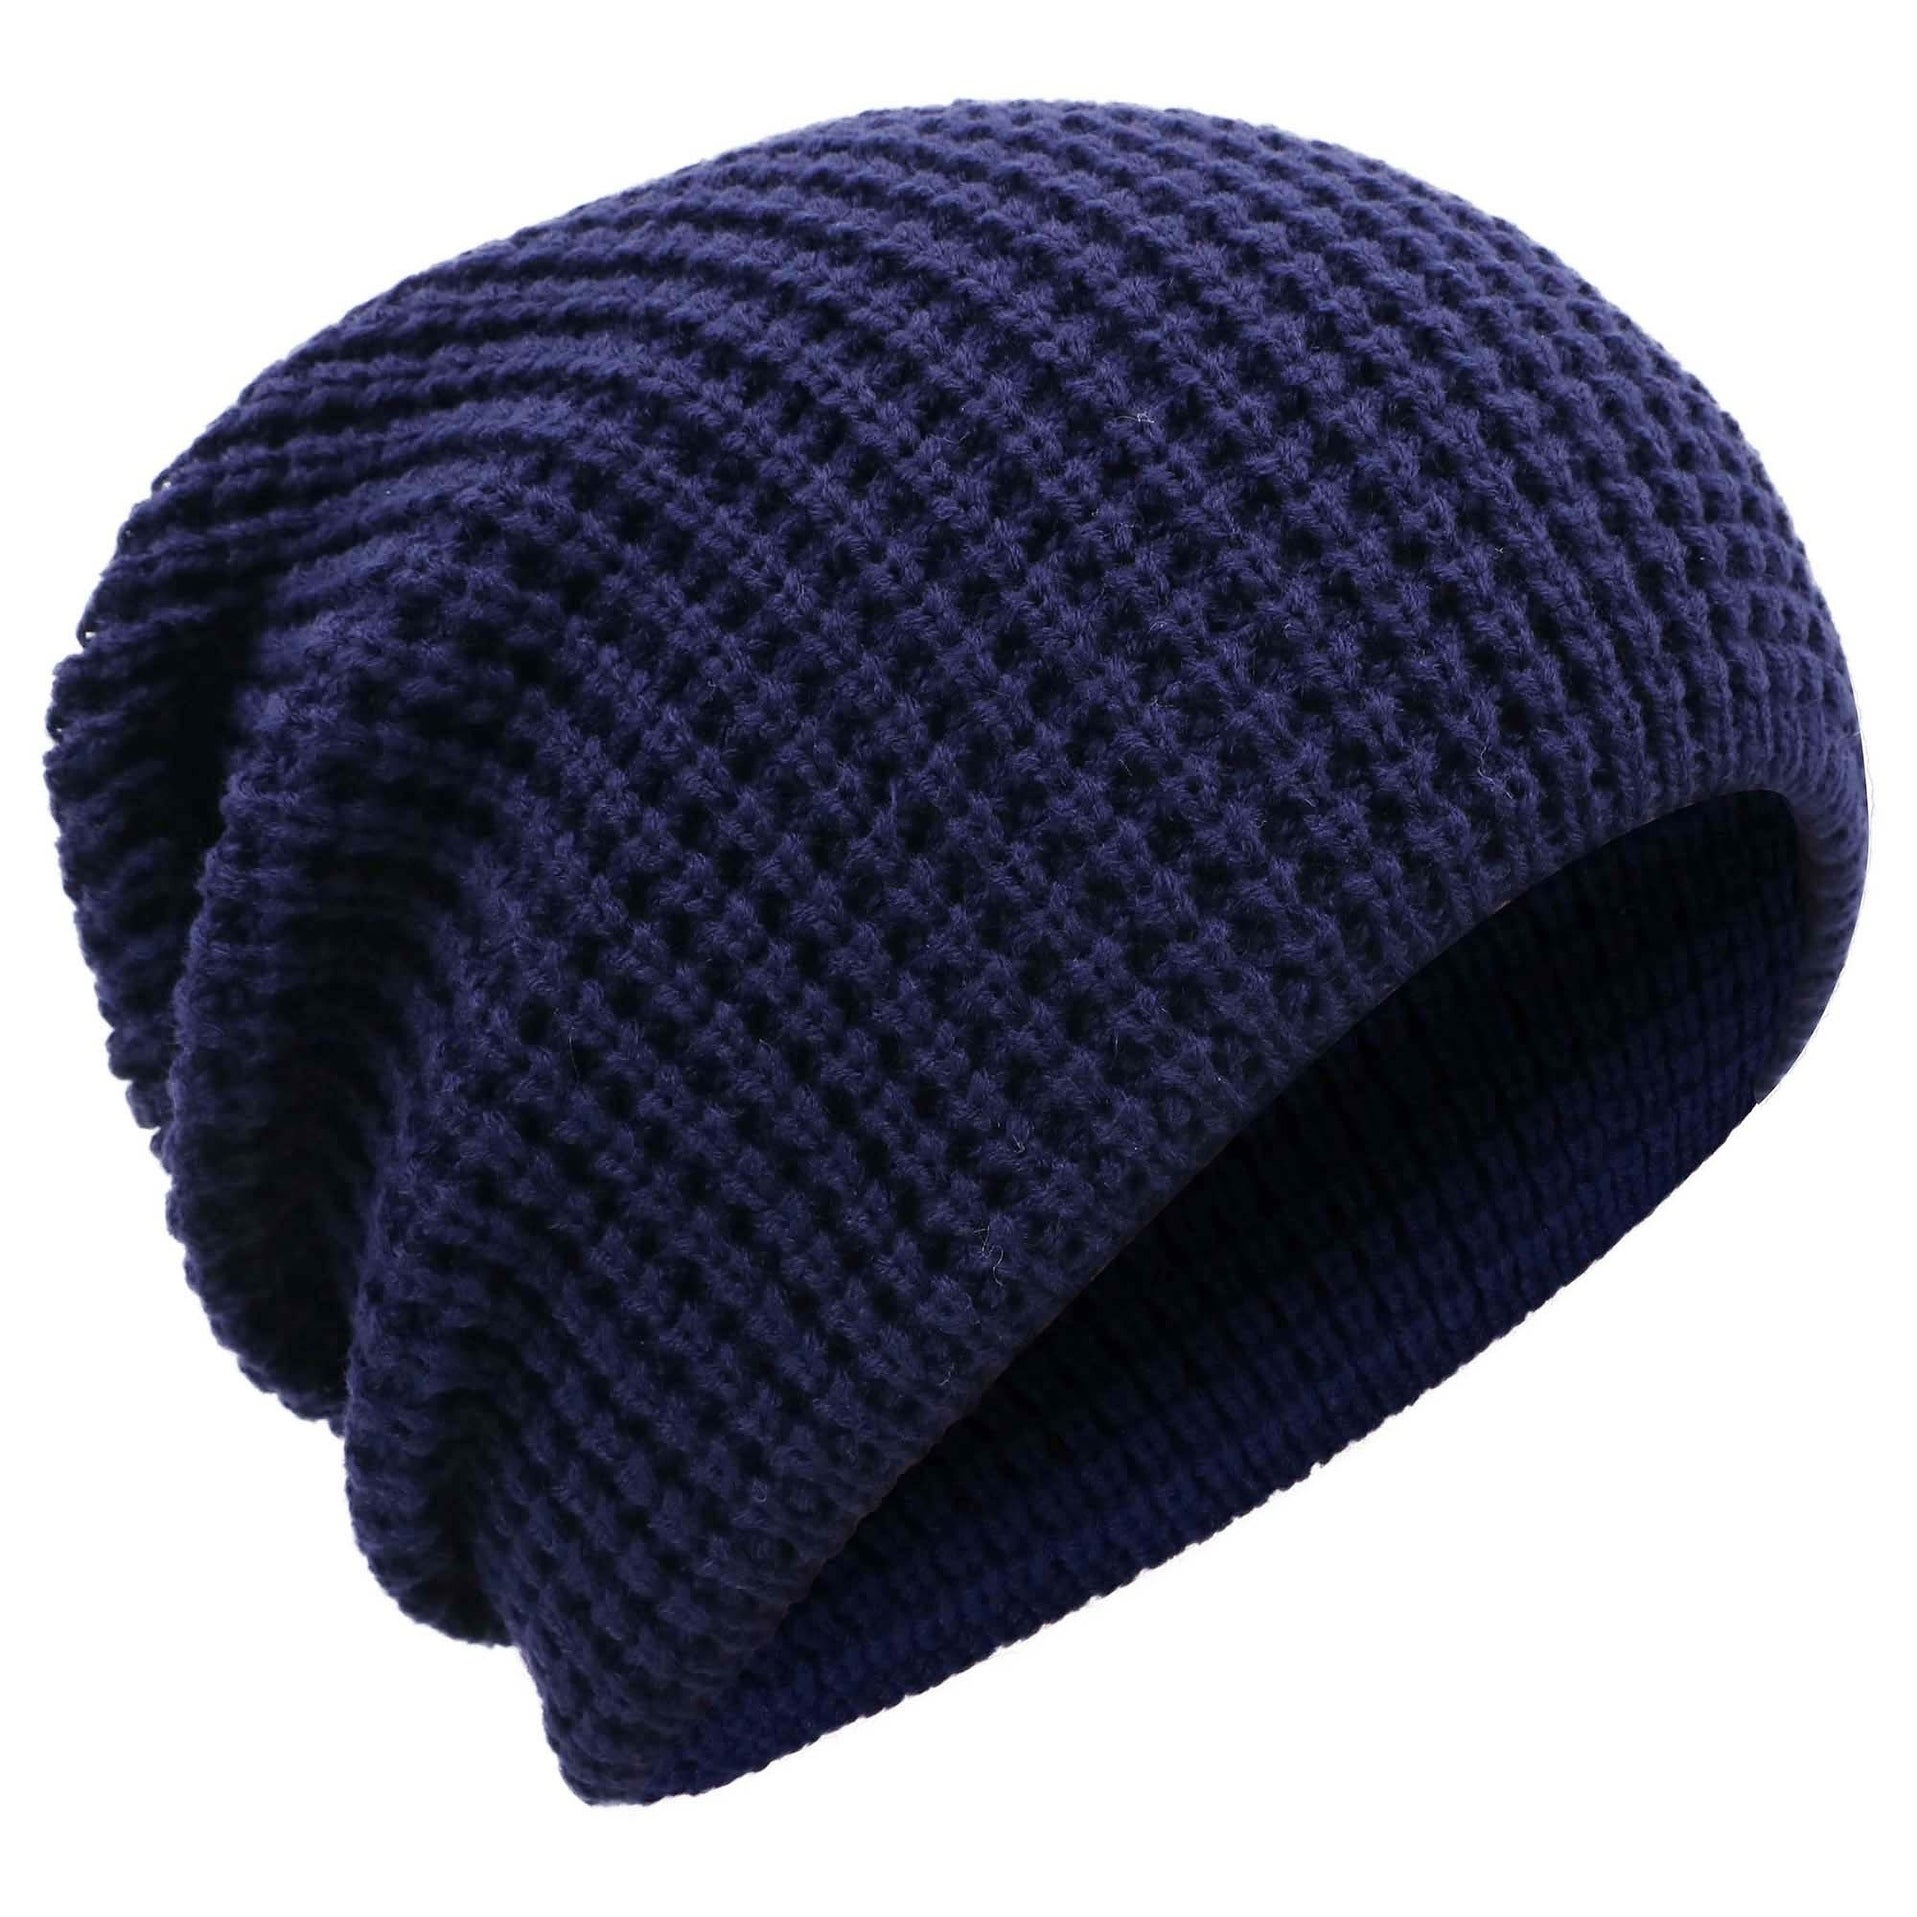 d6adbb50ac591 Men s Winter Thick Knit Slouchy Fit Outdoors Ski Beanie Hat. by Simplicity